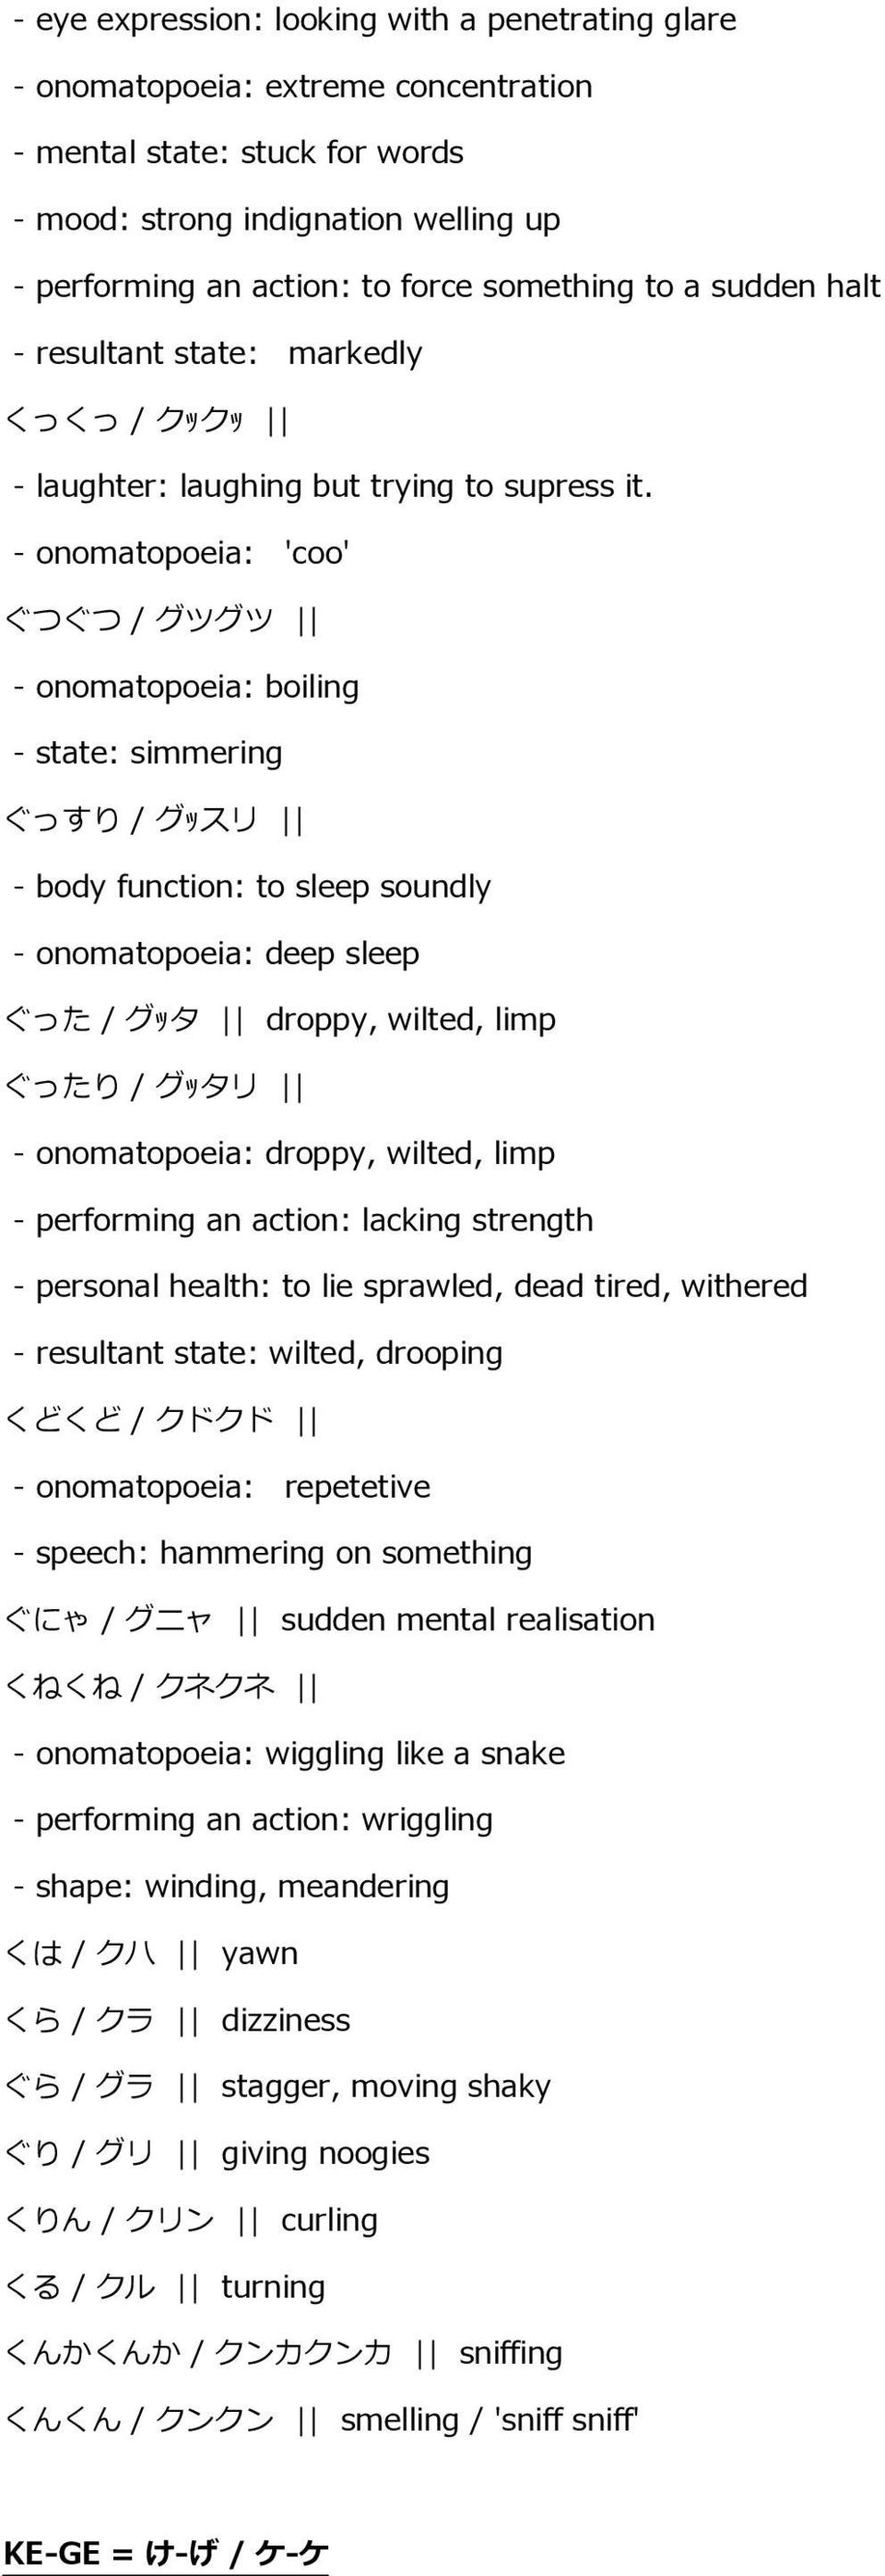 - onomatopoeia: 'coo' ぐつぐつ / グツグツ - onomatopoeia: boiling - state: simmering ぐっすり / グッスリ - body function: to sleep soundly - onomatopoeia: deep sleep ぐった / グッタ droppy, wilted, limp ぐったり / グッタリ -